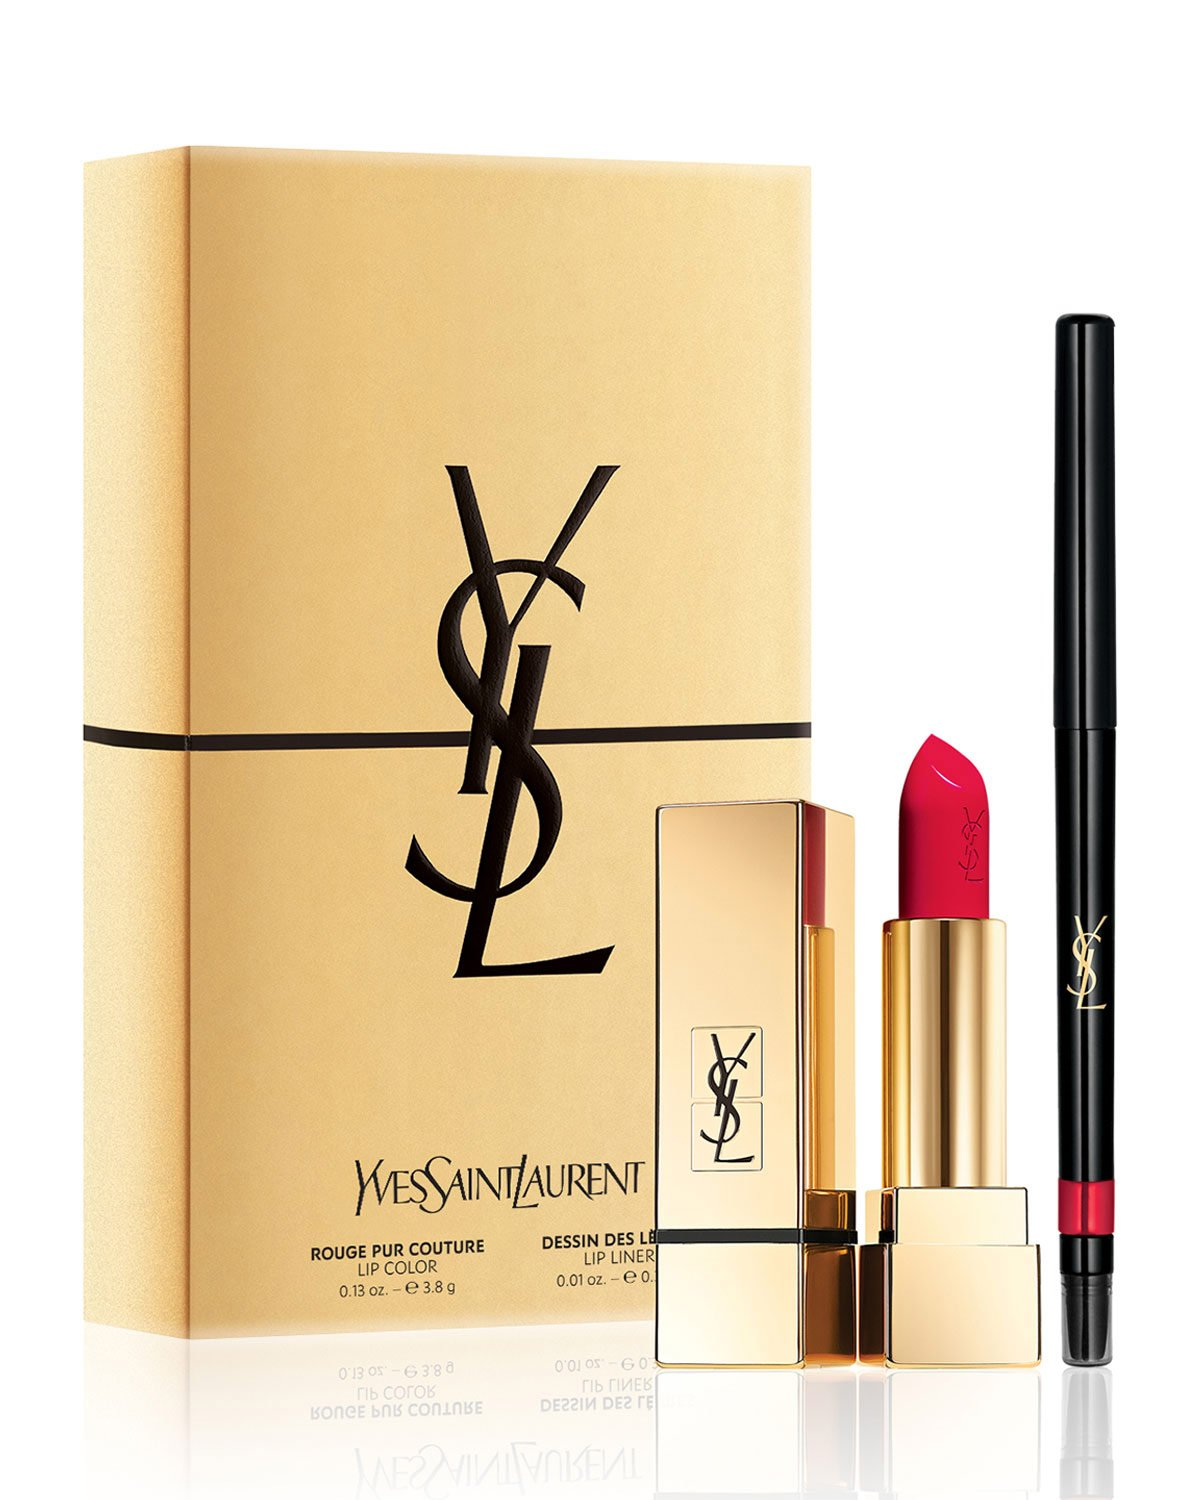 beauty gift guide holiday yves saint laurent ysl red lip and liner set love olia majd